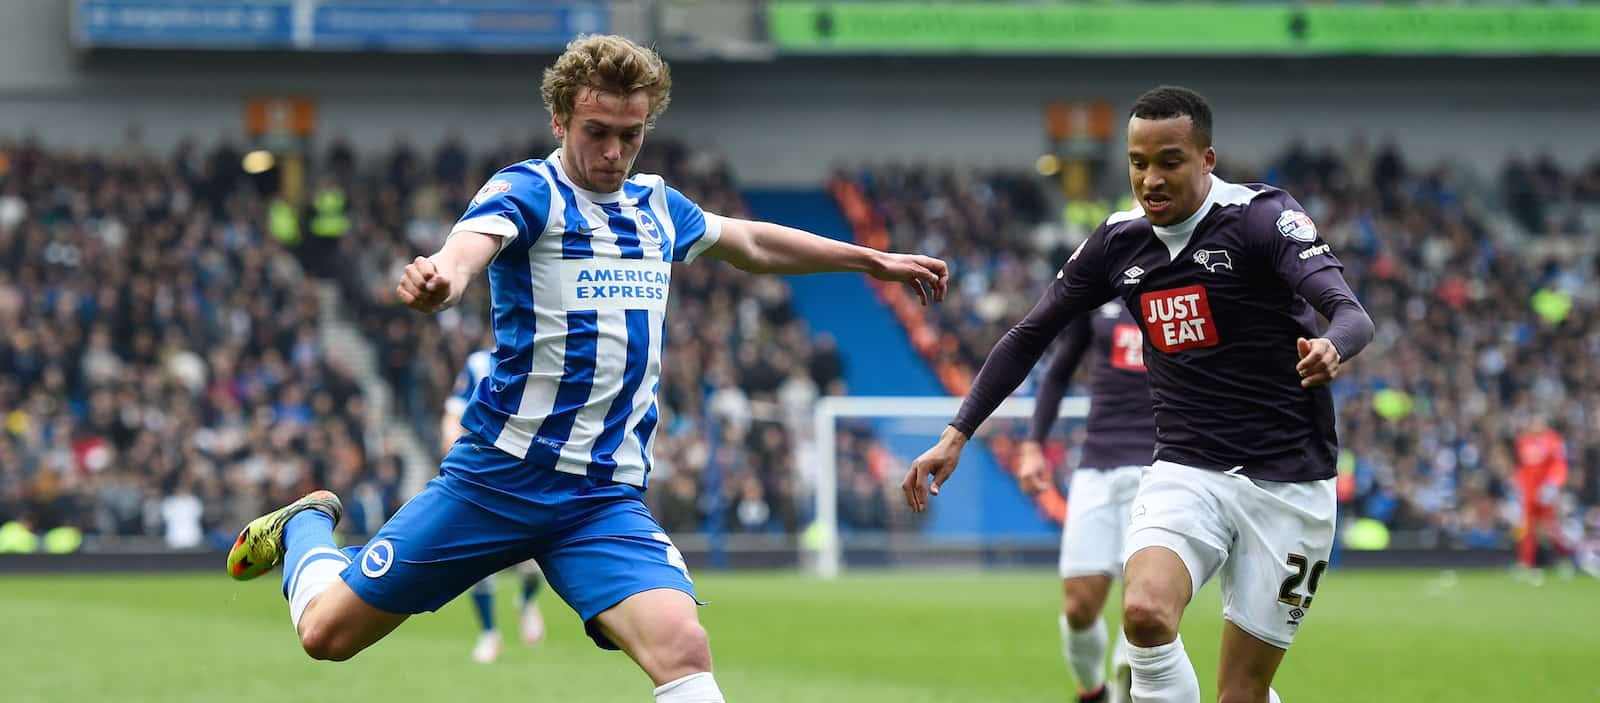 James Wilson: Another Manchester United talent lost?